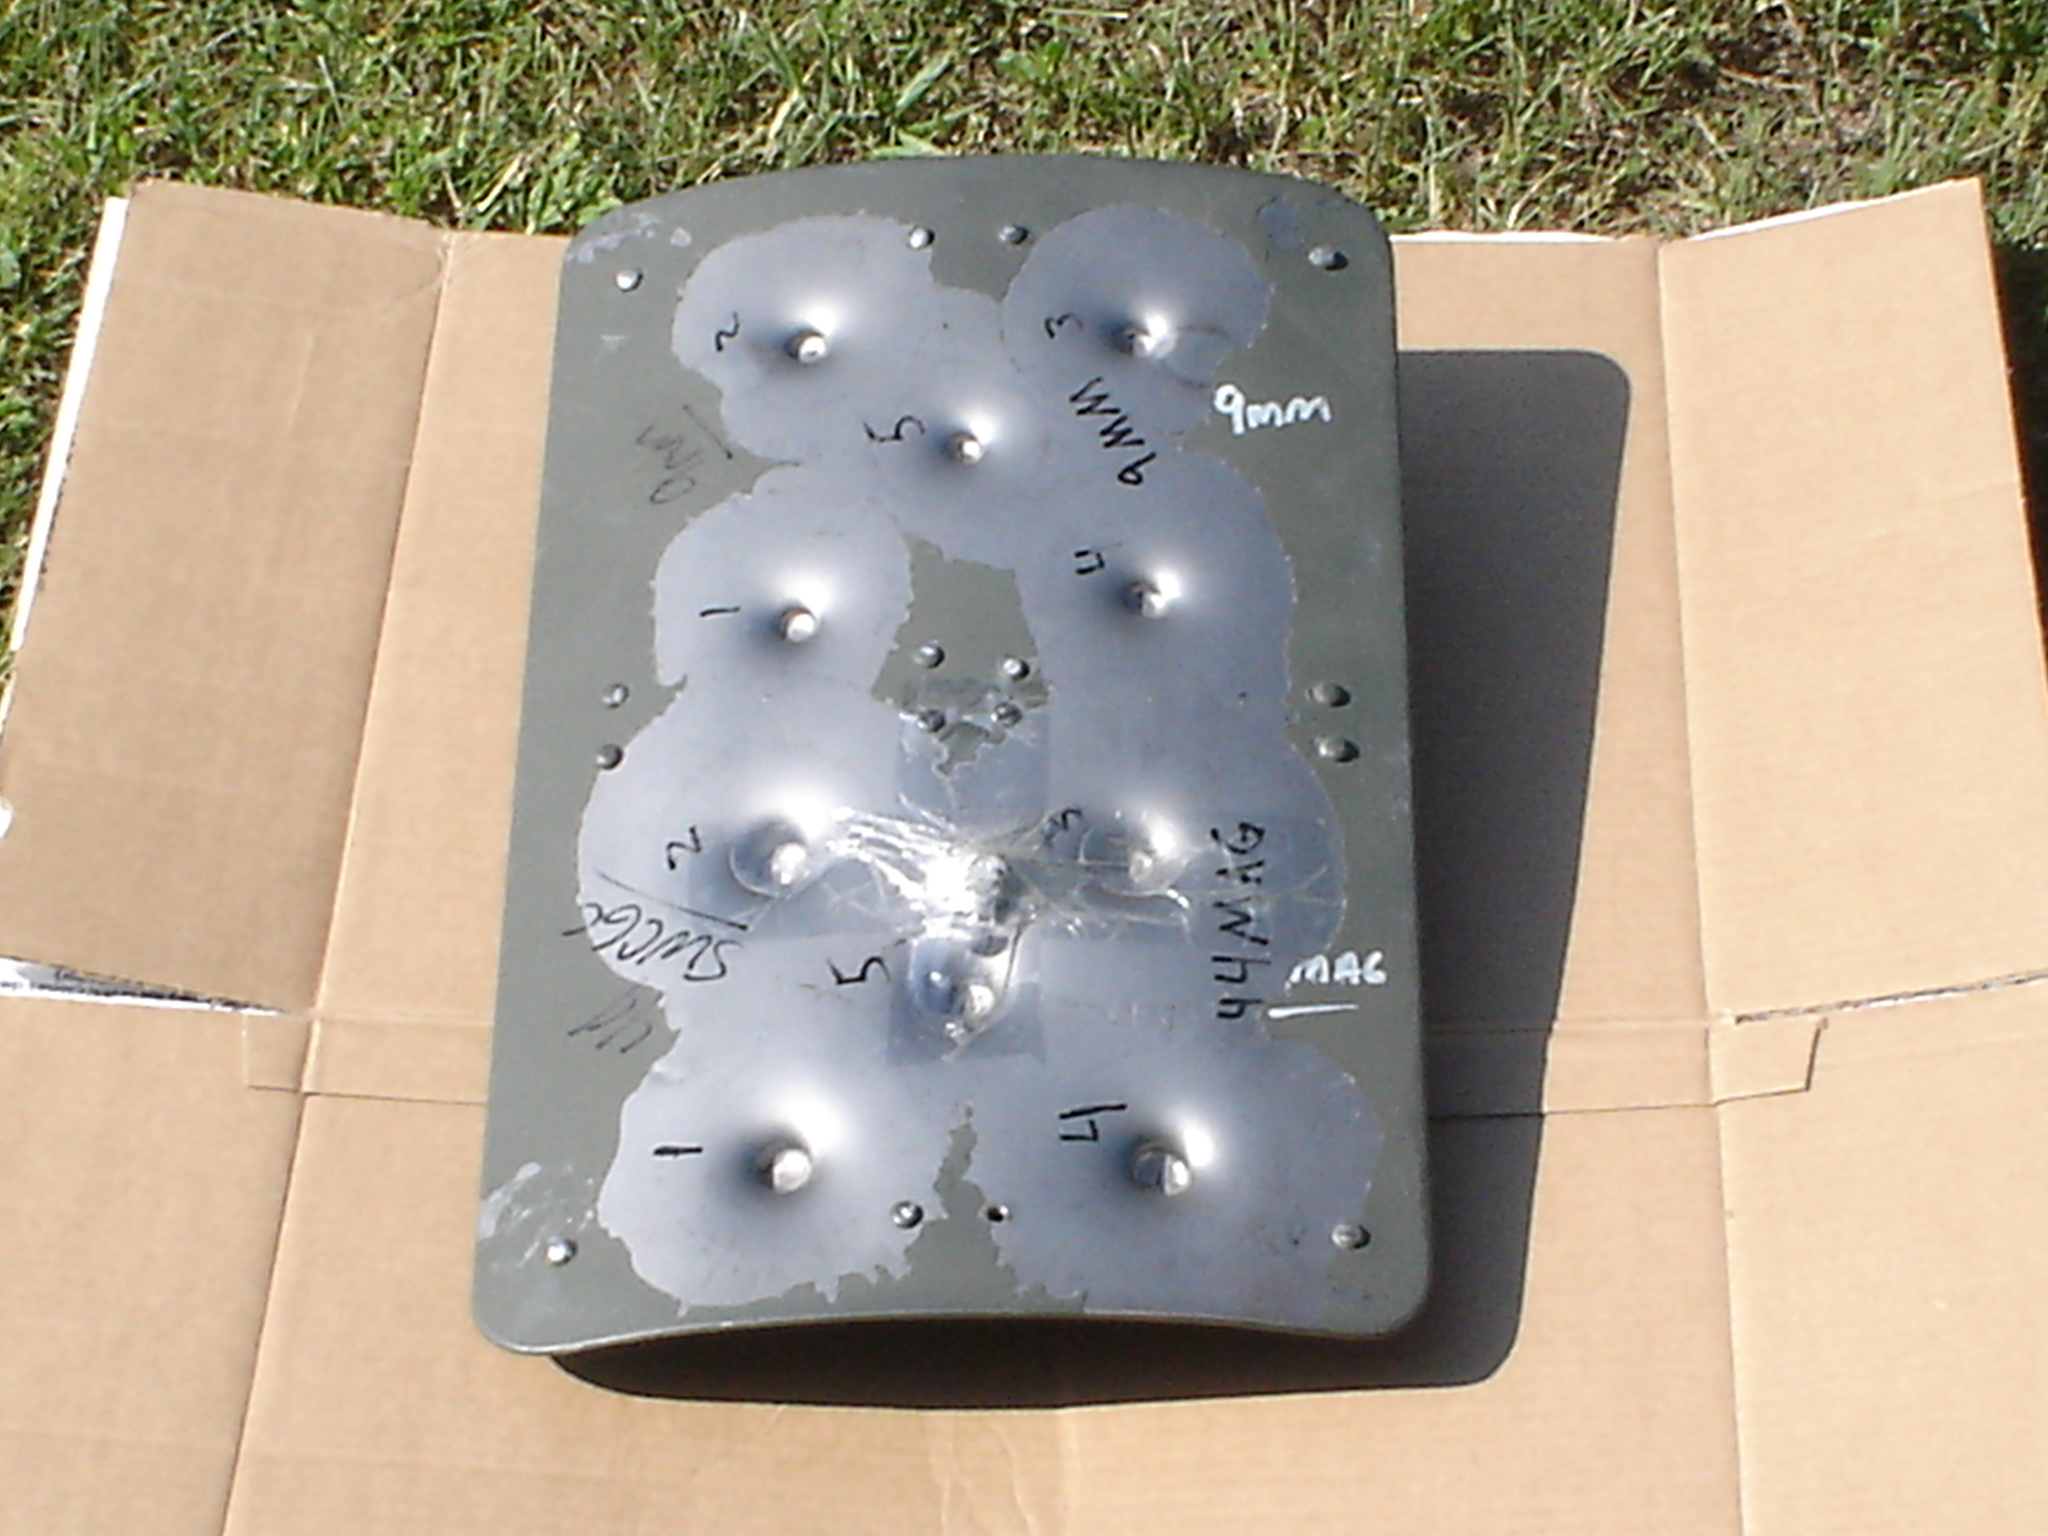 MINI SHIELD%20TEST%20LEVEL%20IIIA%20PASS%20001 <!  :en  >Prototype Mini Battle Shield/Mini Combat Shield Gets Shoot Tested (Pics)<!  :  >